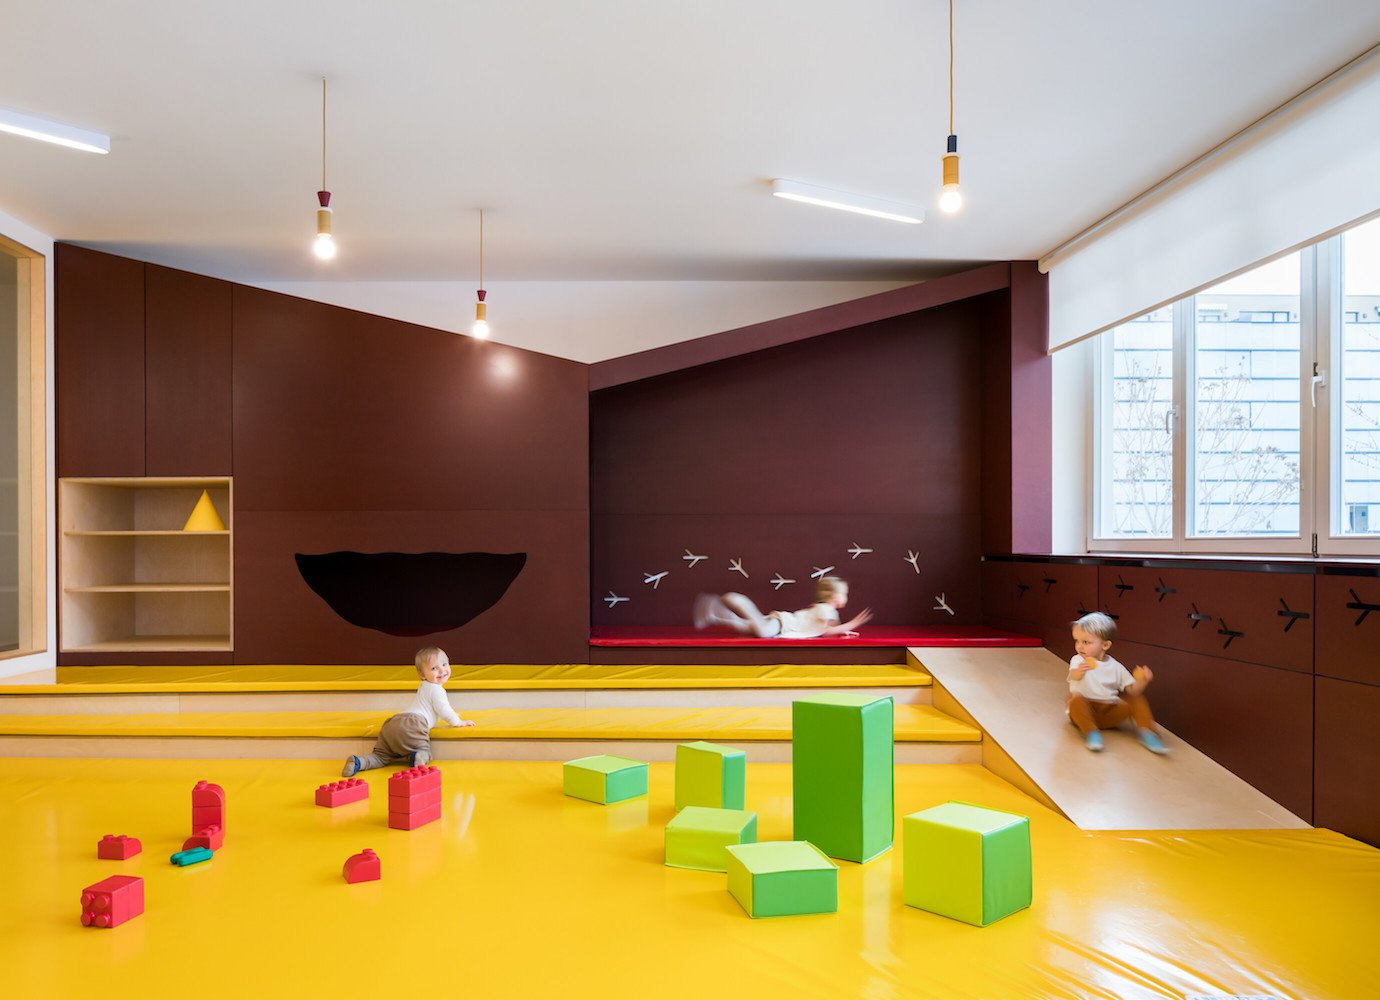 This Prague nursery design is dedicated to children's hidey-holes and natural materials